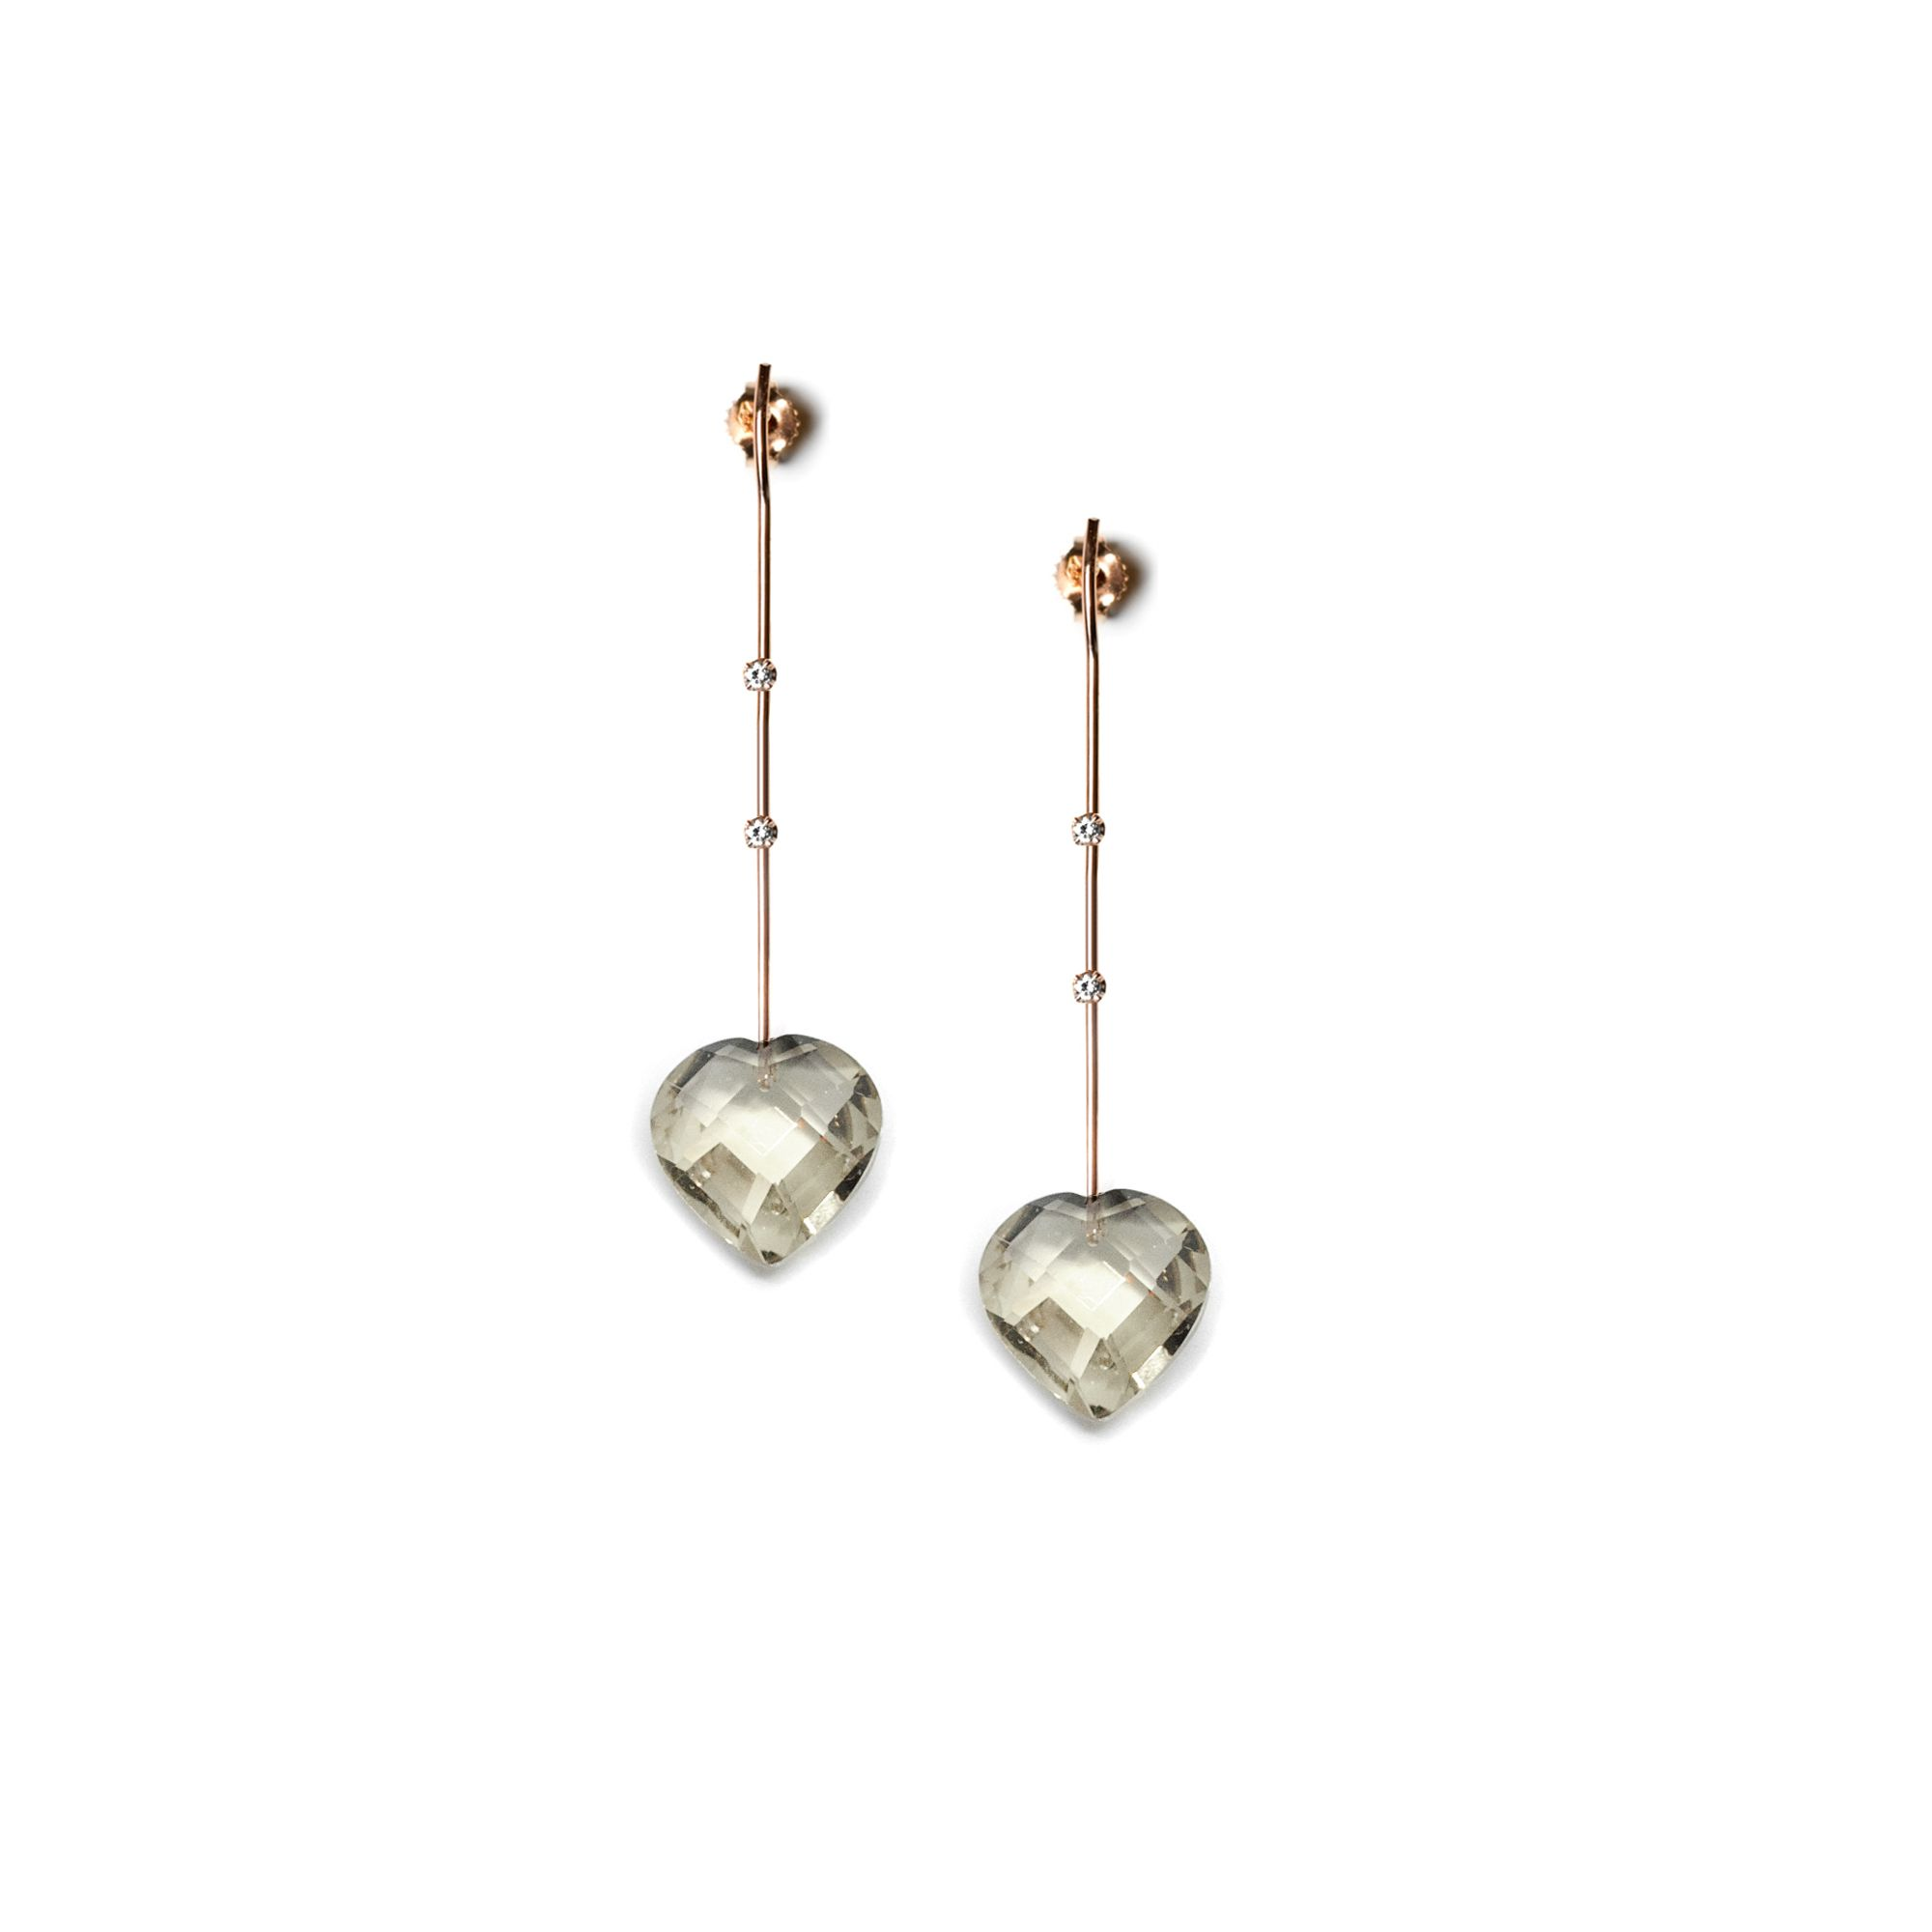 Rose gold fine earrings with hearts Earrings in rose gold and quartz